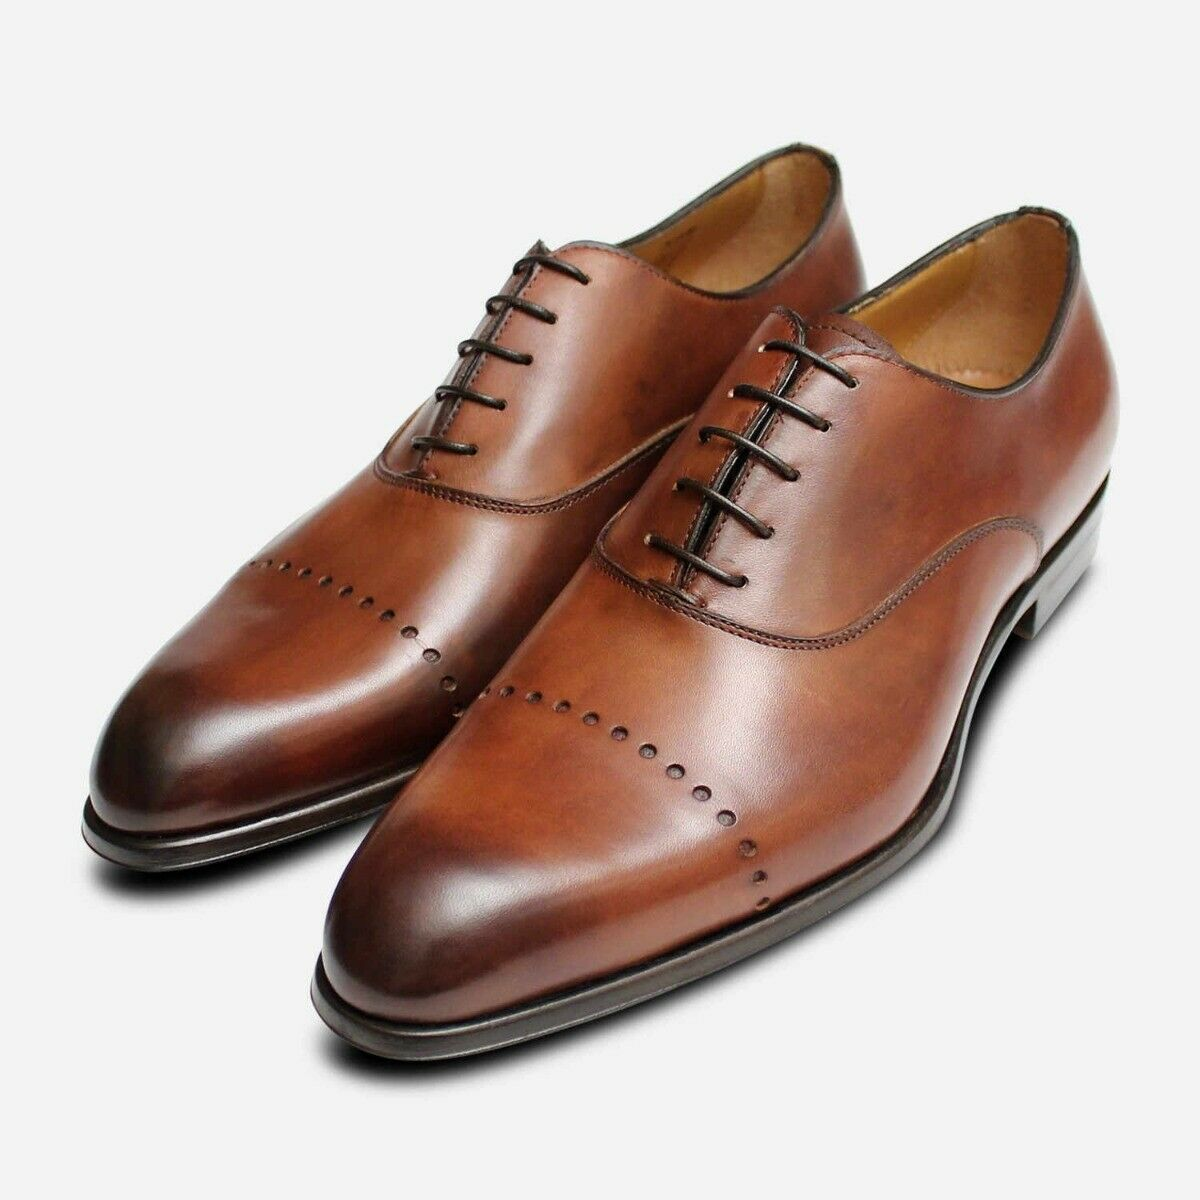 Formal Italian Oxford Lace Shoes Brown Leather